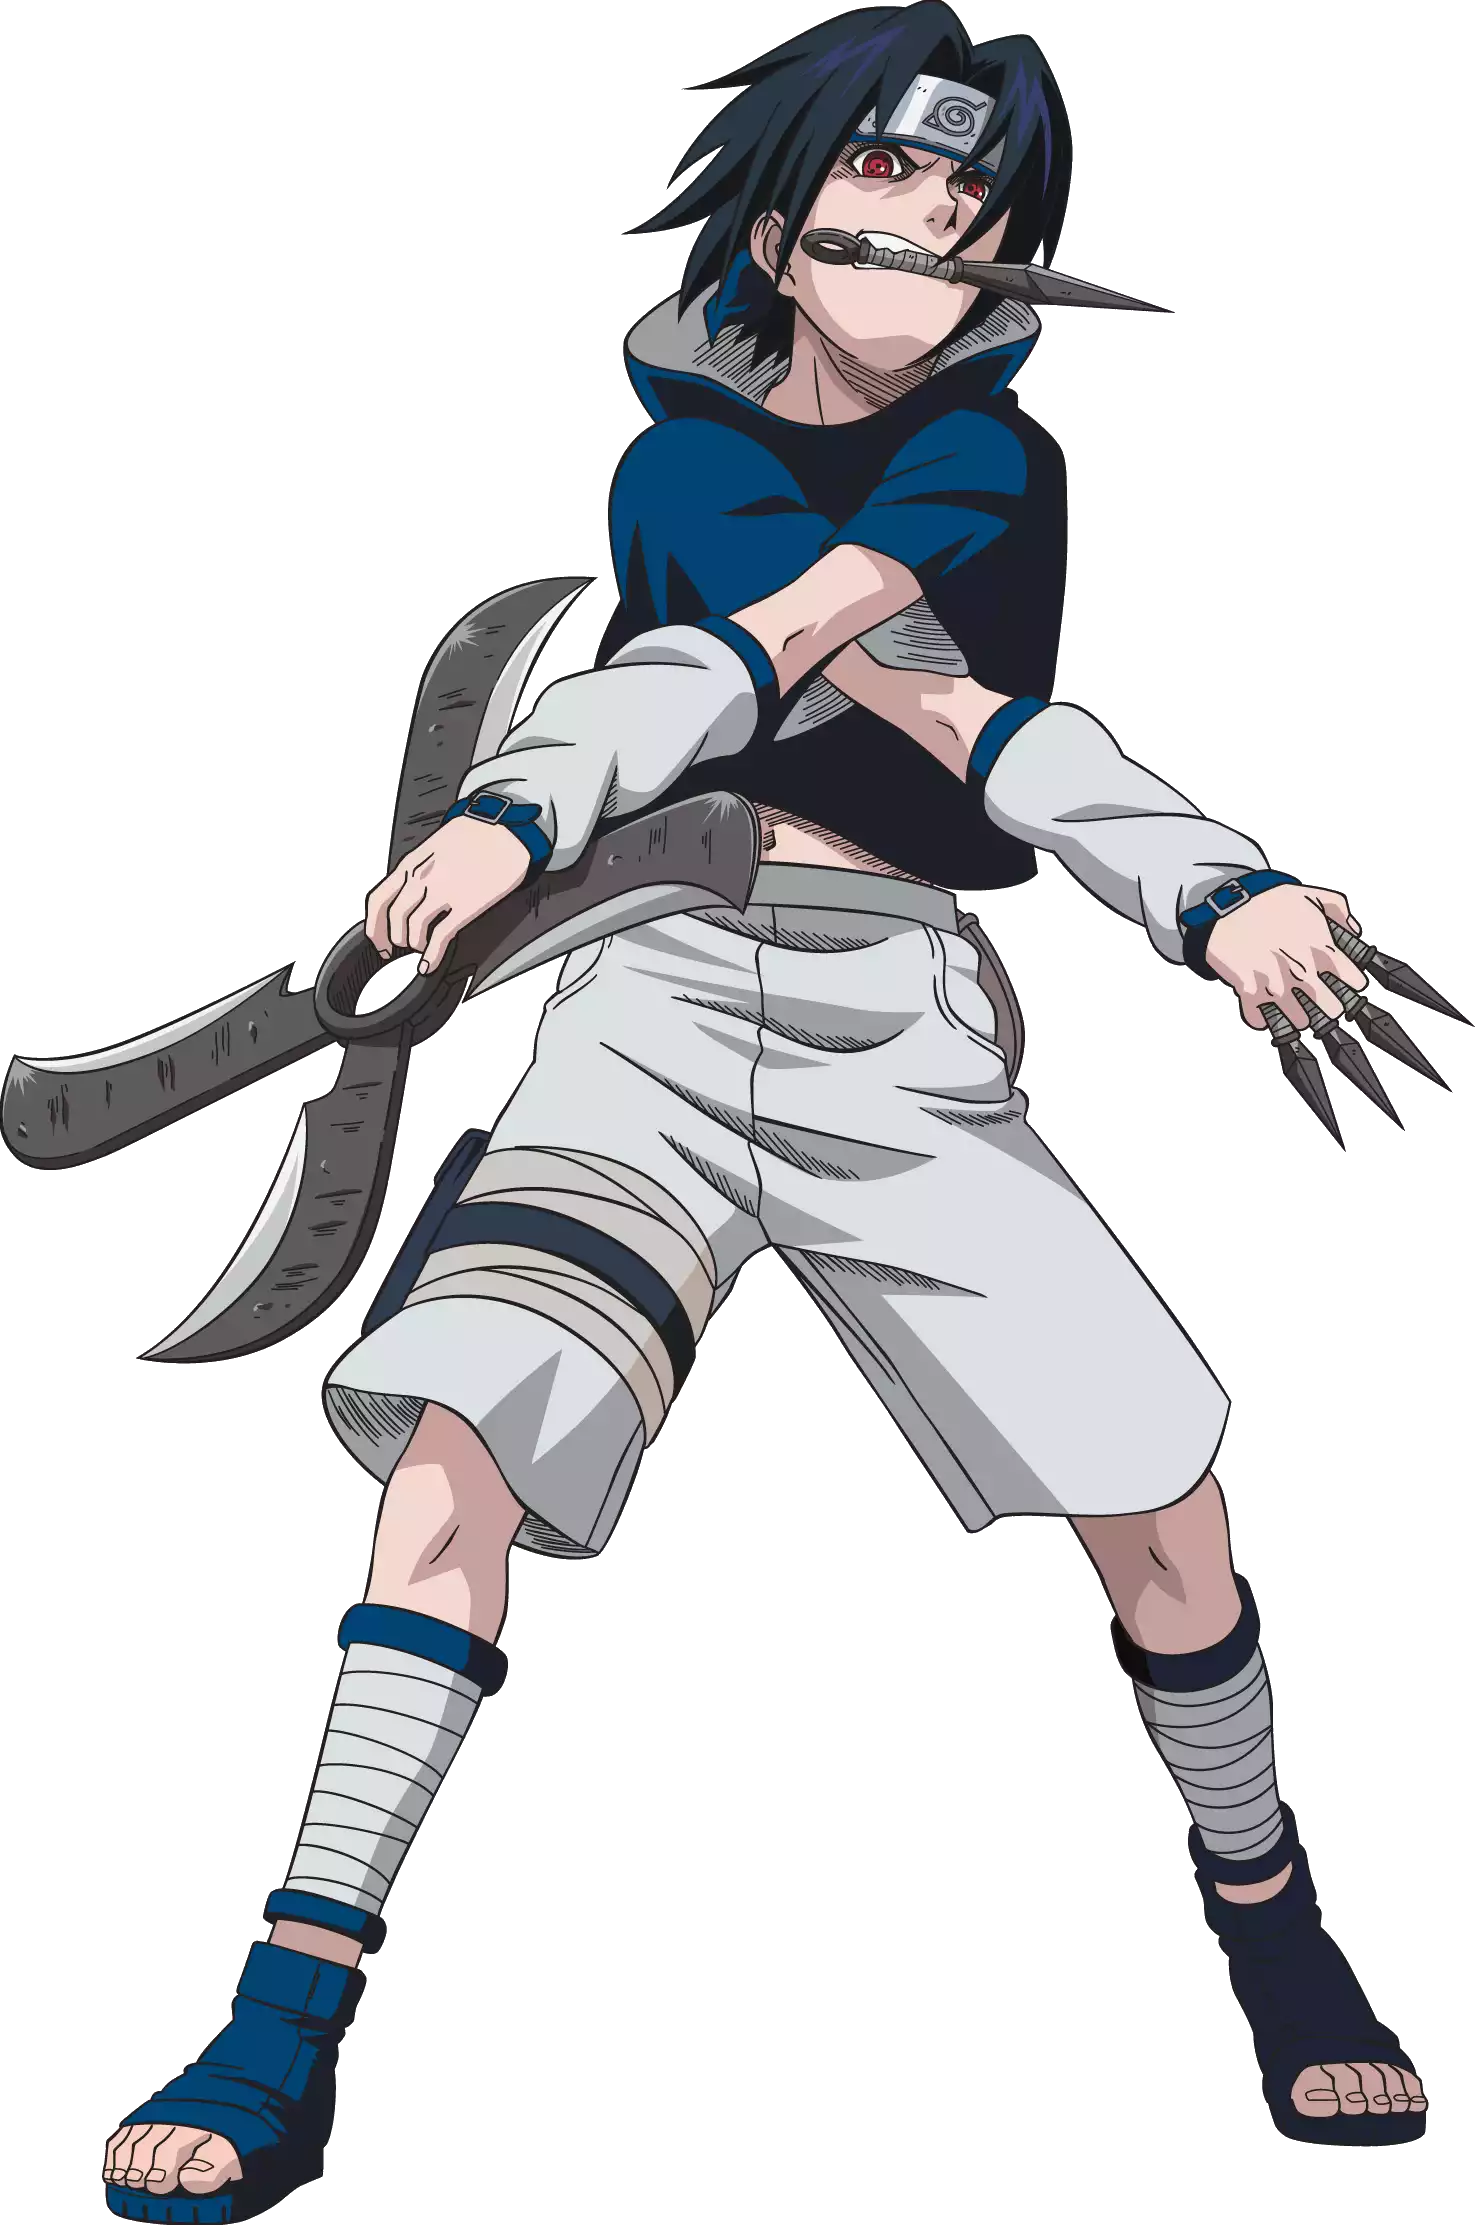 Sasuke uchiha vs battles wiki fandom powered by wikia - Naruto as sasuke ...